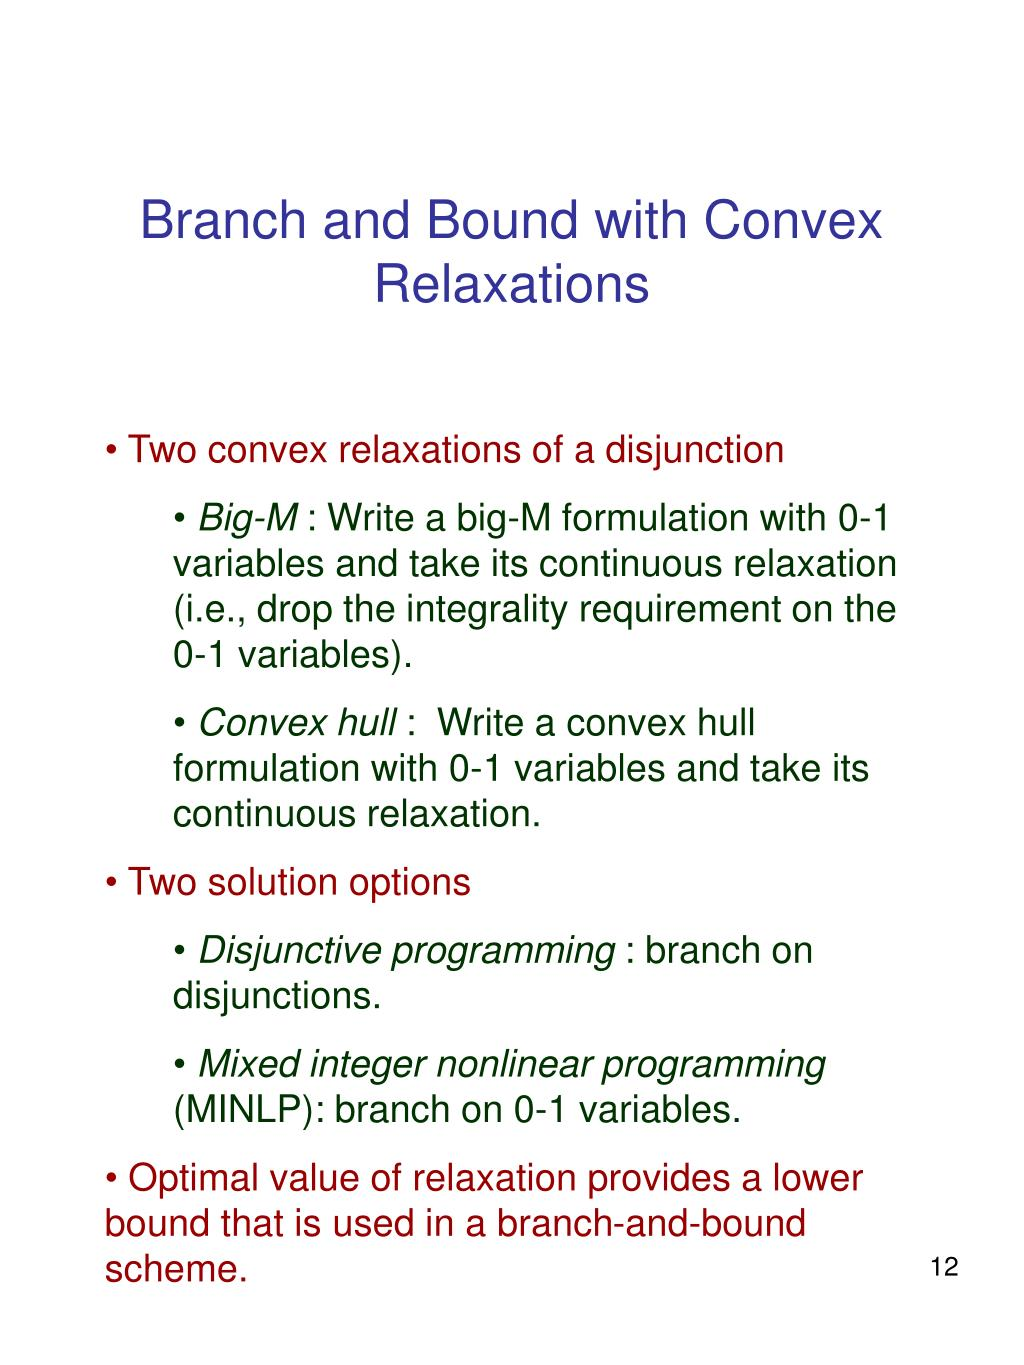 Branch and Bound with Convex Relaxations